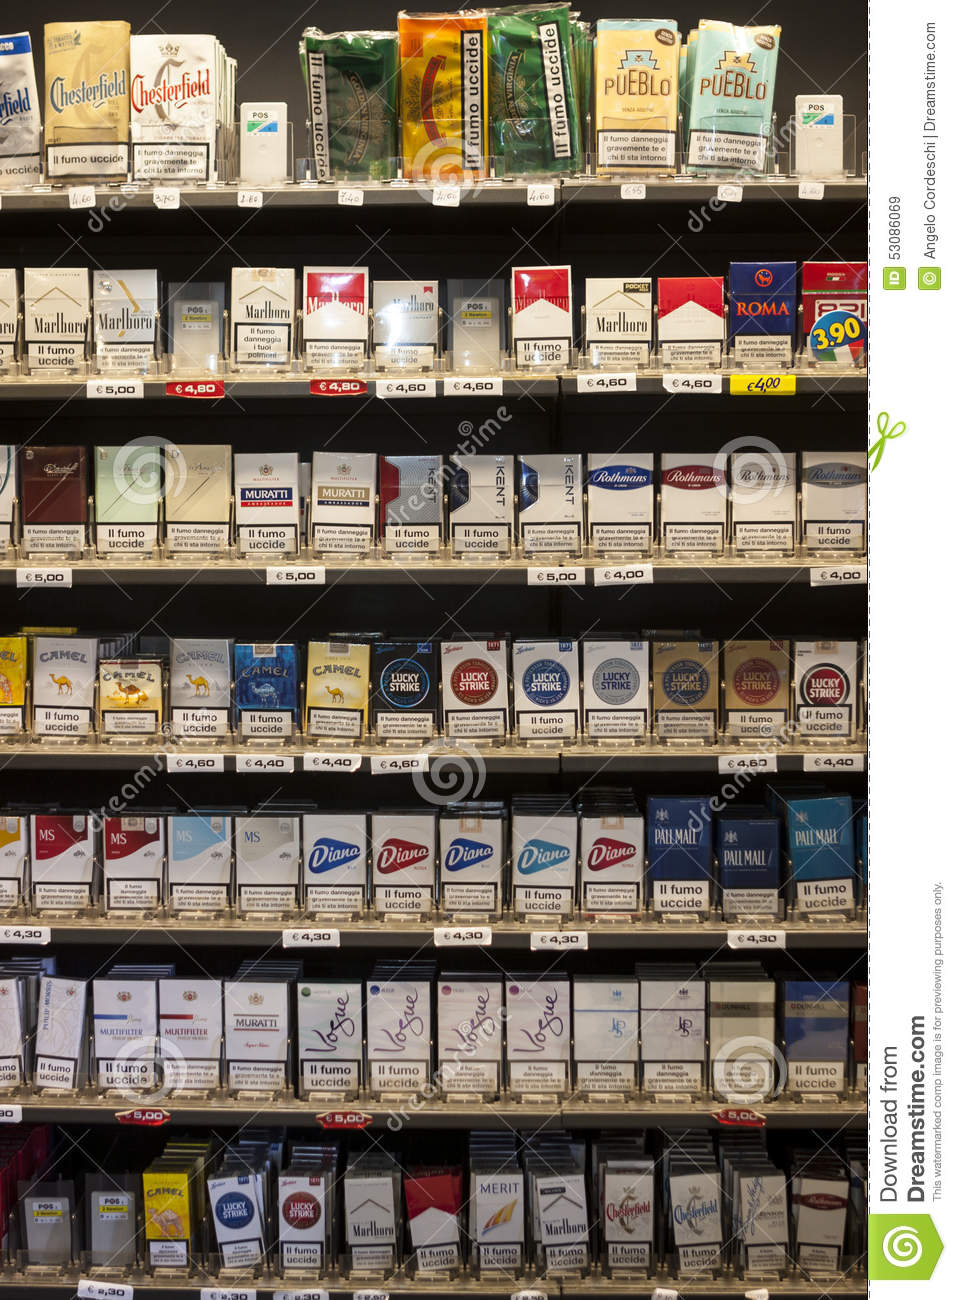 Tobacco Retail Business Plan